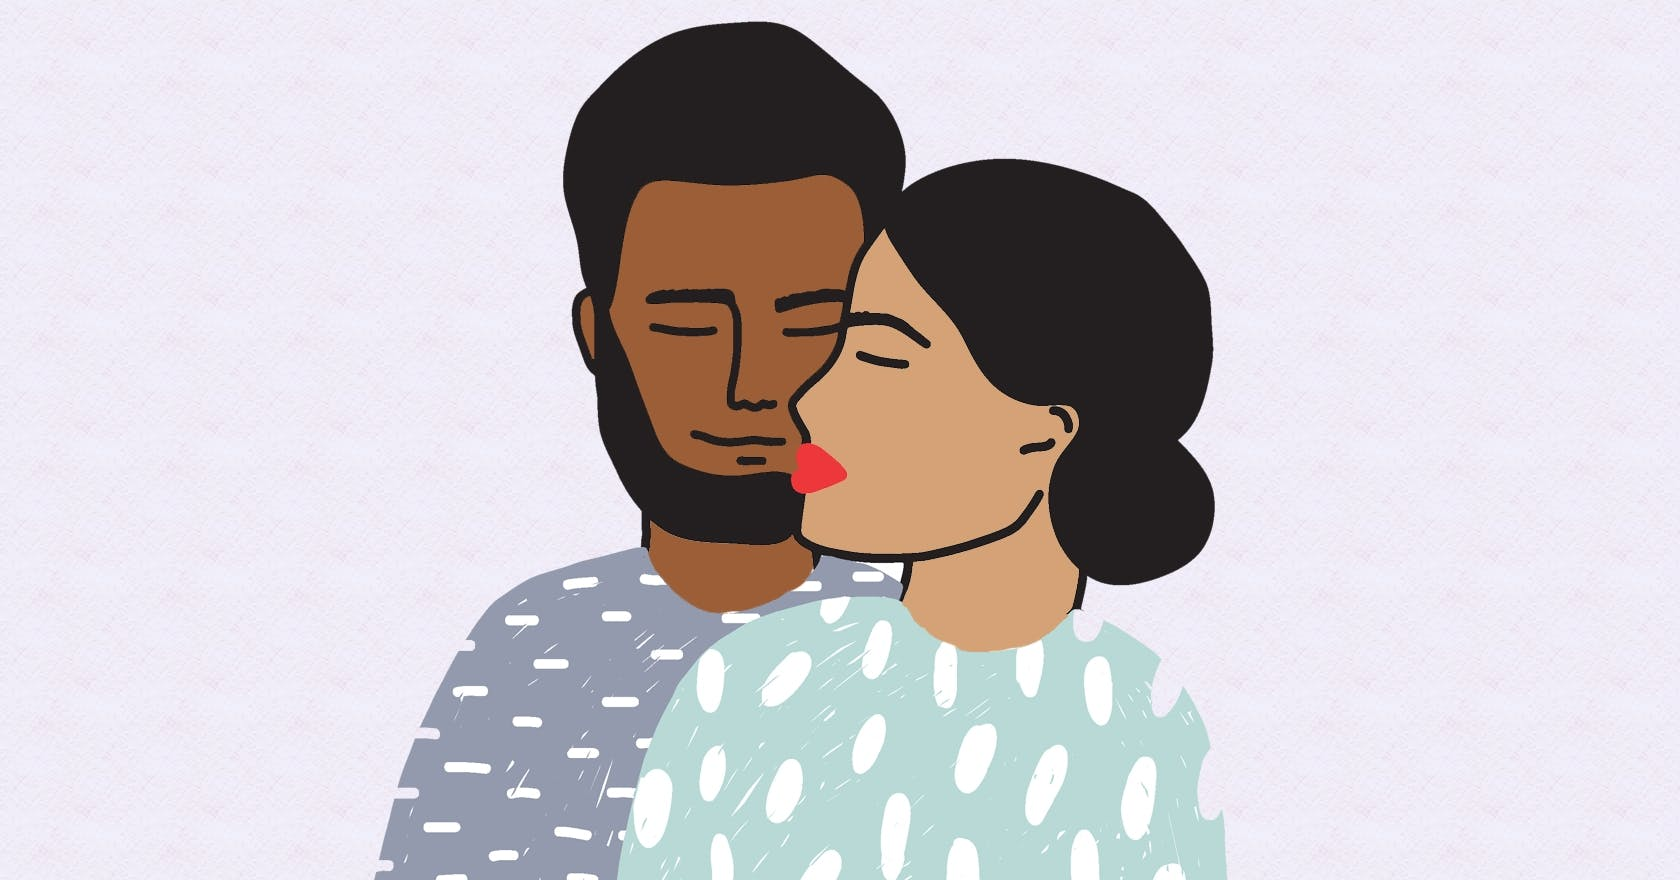 Is dating someone with different values to you ever a good idea?